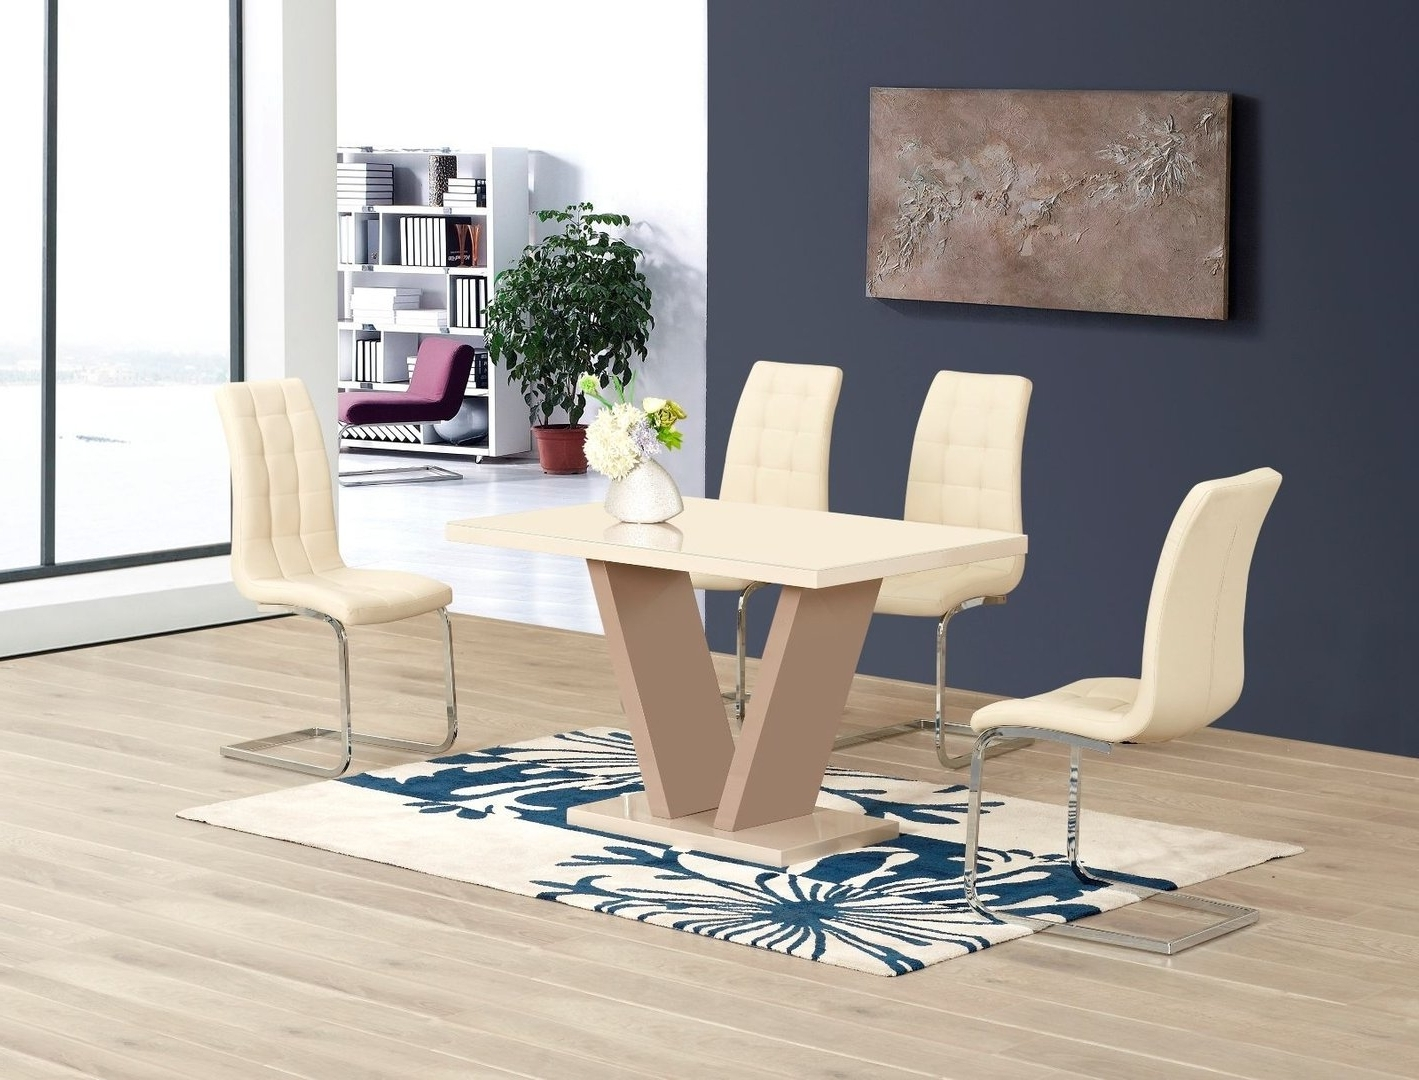 Black Gloss Dining Room Furniture Regarding Well Known Cream High Gloss Glass Dining Table And 6 Chairs – Homegenies (View 14 of 25)